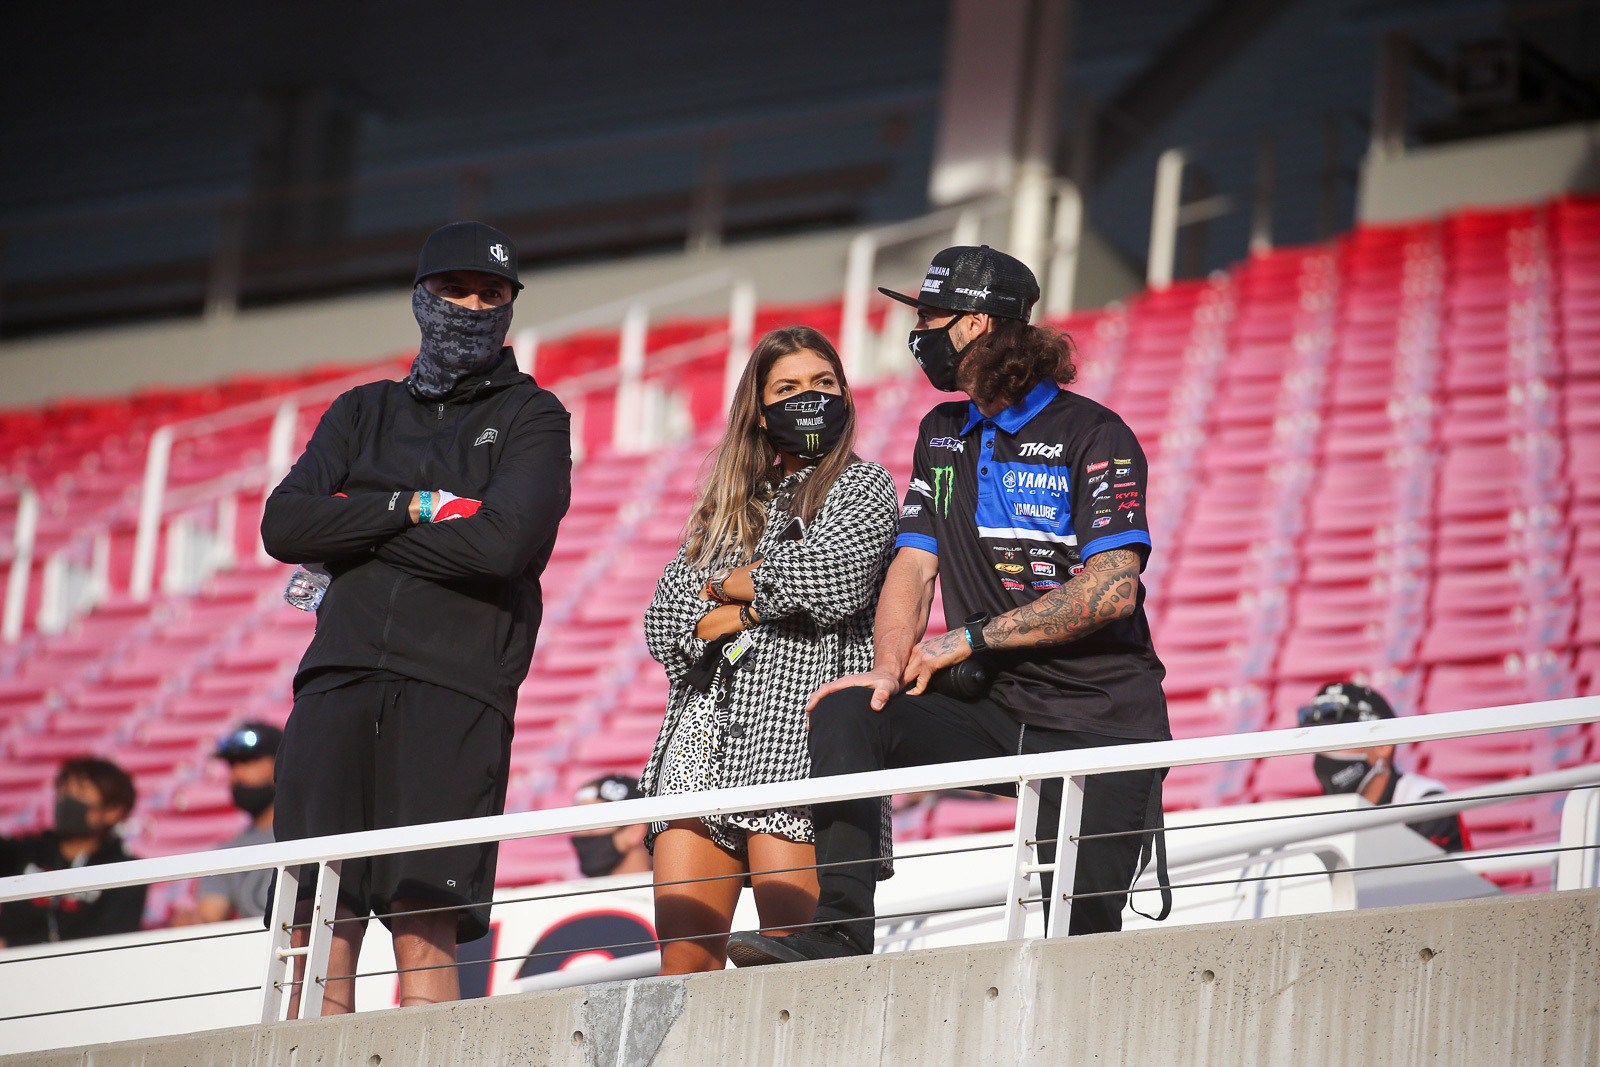 David Vuillemin, Dylan's wife Nastasia, and Dylan Ferrandis scoping out the track before practice.